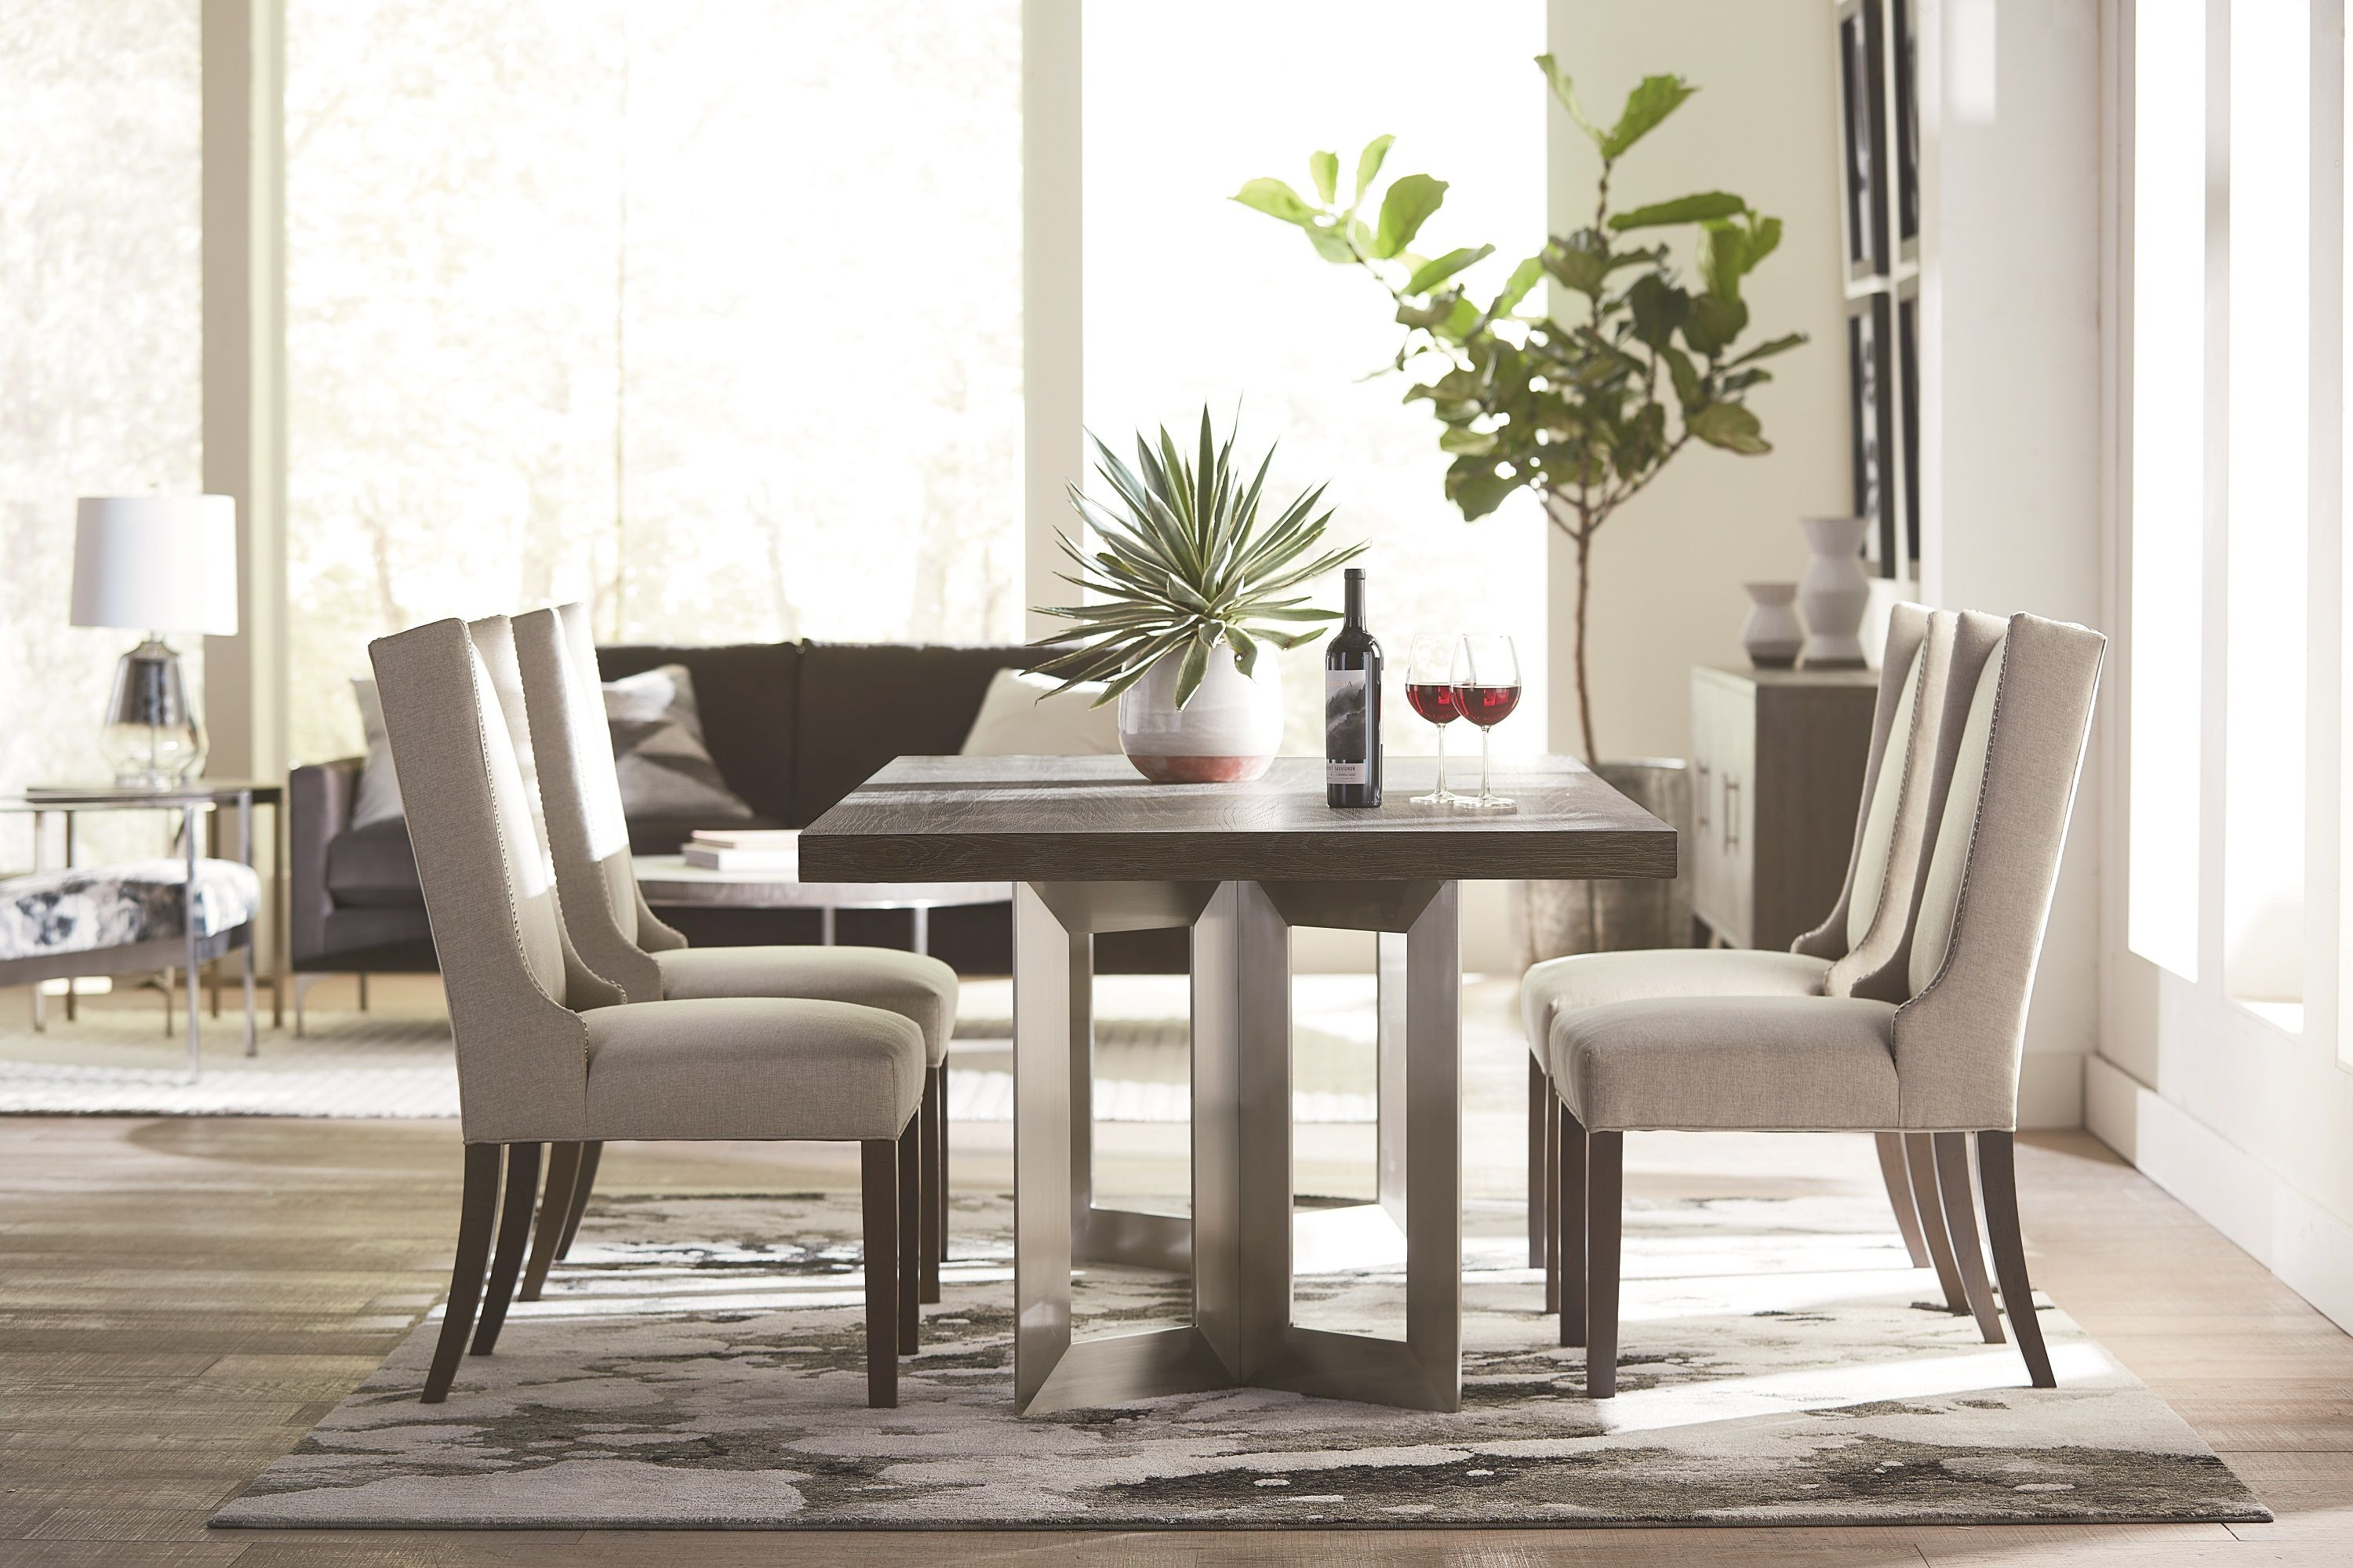 Modern Astor Dining Table Concrete Dining Table Furniture Fine